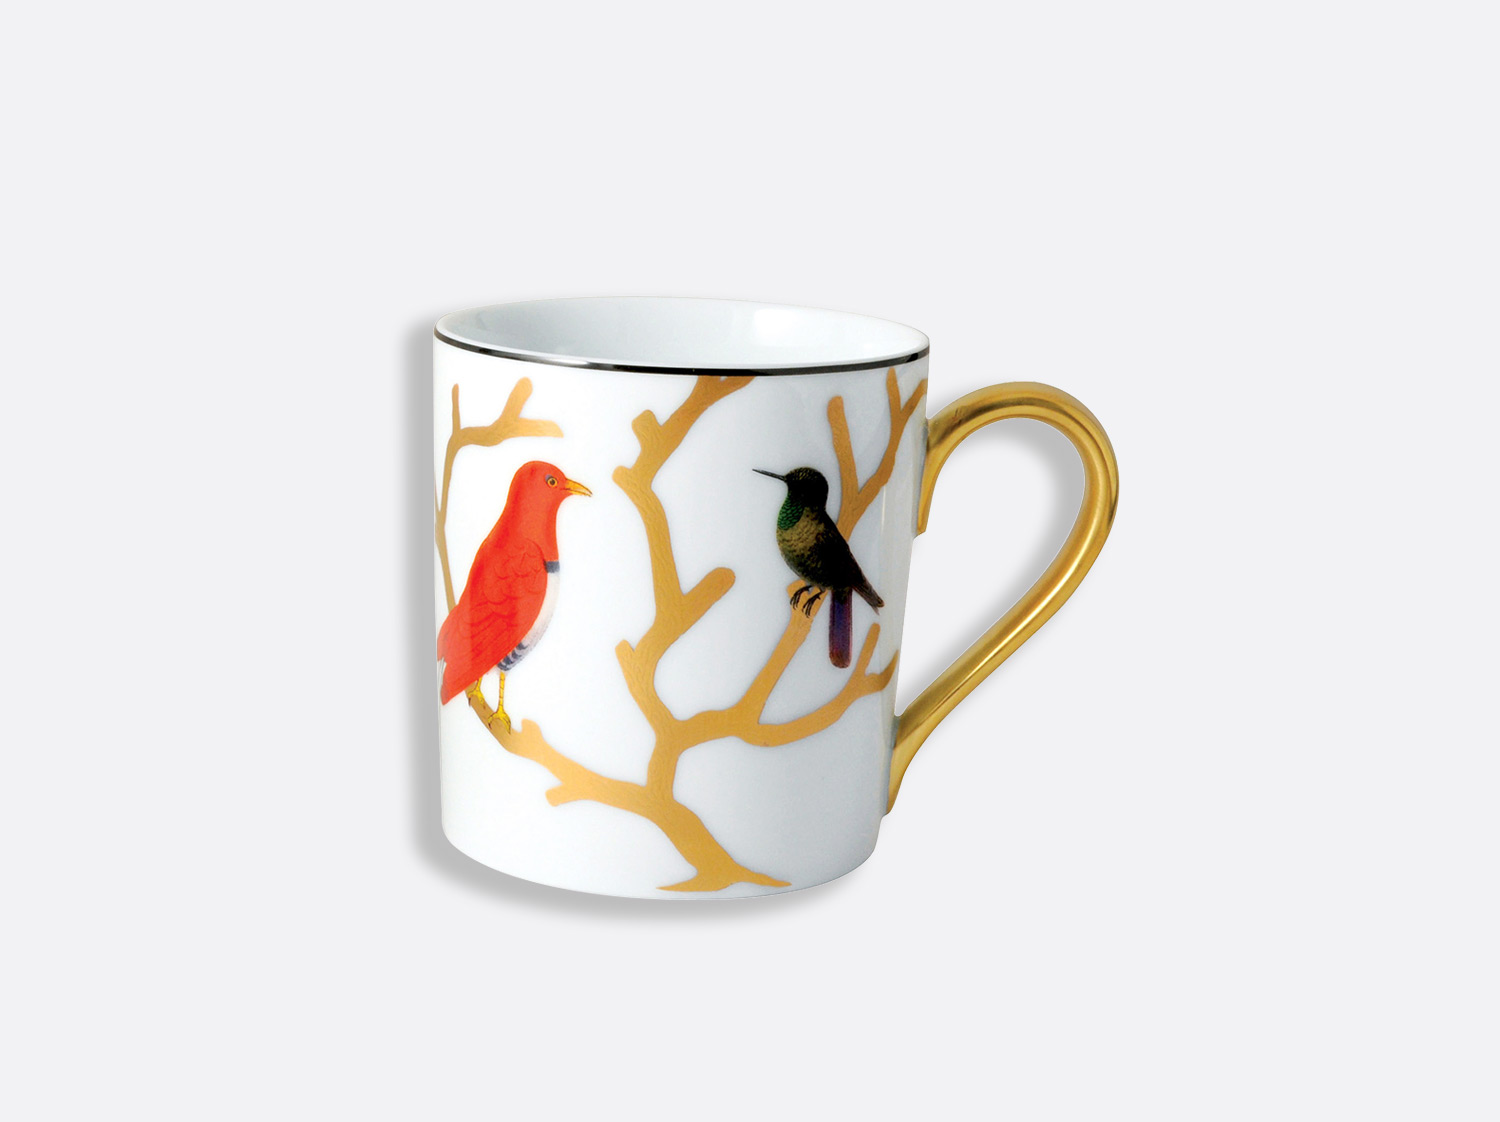 Mug 30 cl en porcelaine de la collection Aux oiseaux Bernardaud